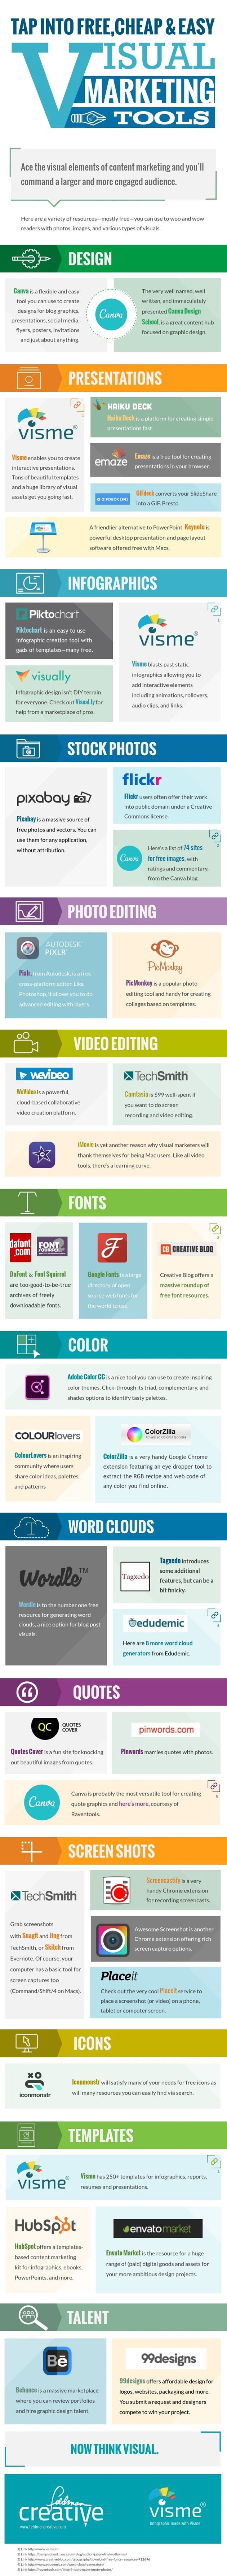 20+ Free or Cheap Tools For a Kick Ass Visual Social Media Strategy #Infographic